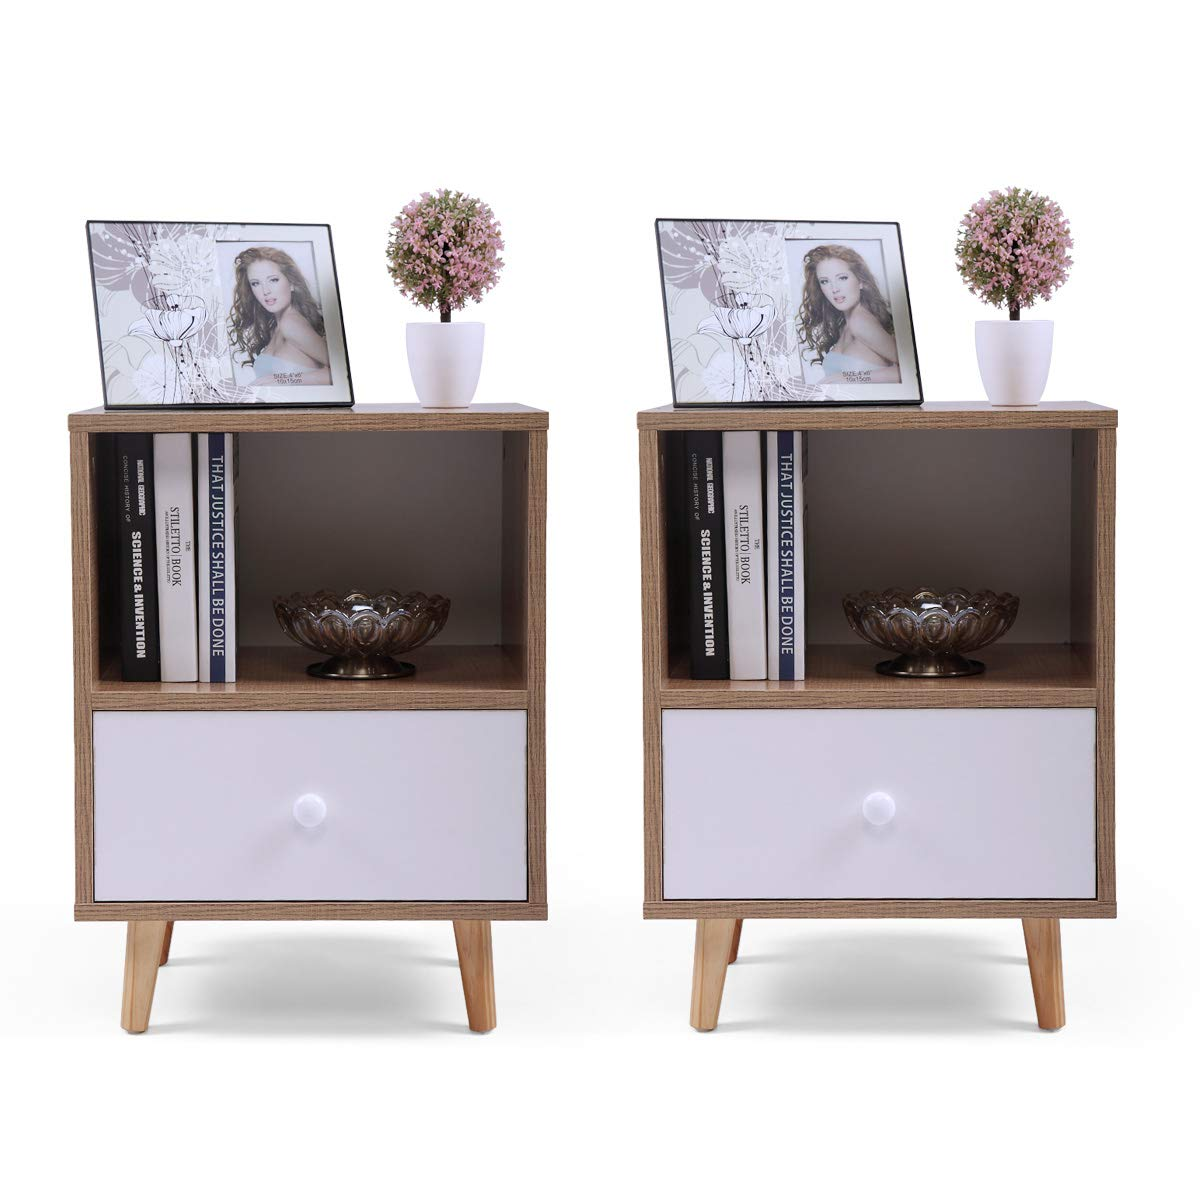 Set of 2 Night Stand 2 Layer w/Drawer Bedside End Table Organizer Bedroom by Betterhomechoice (Image #1)